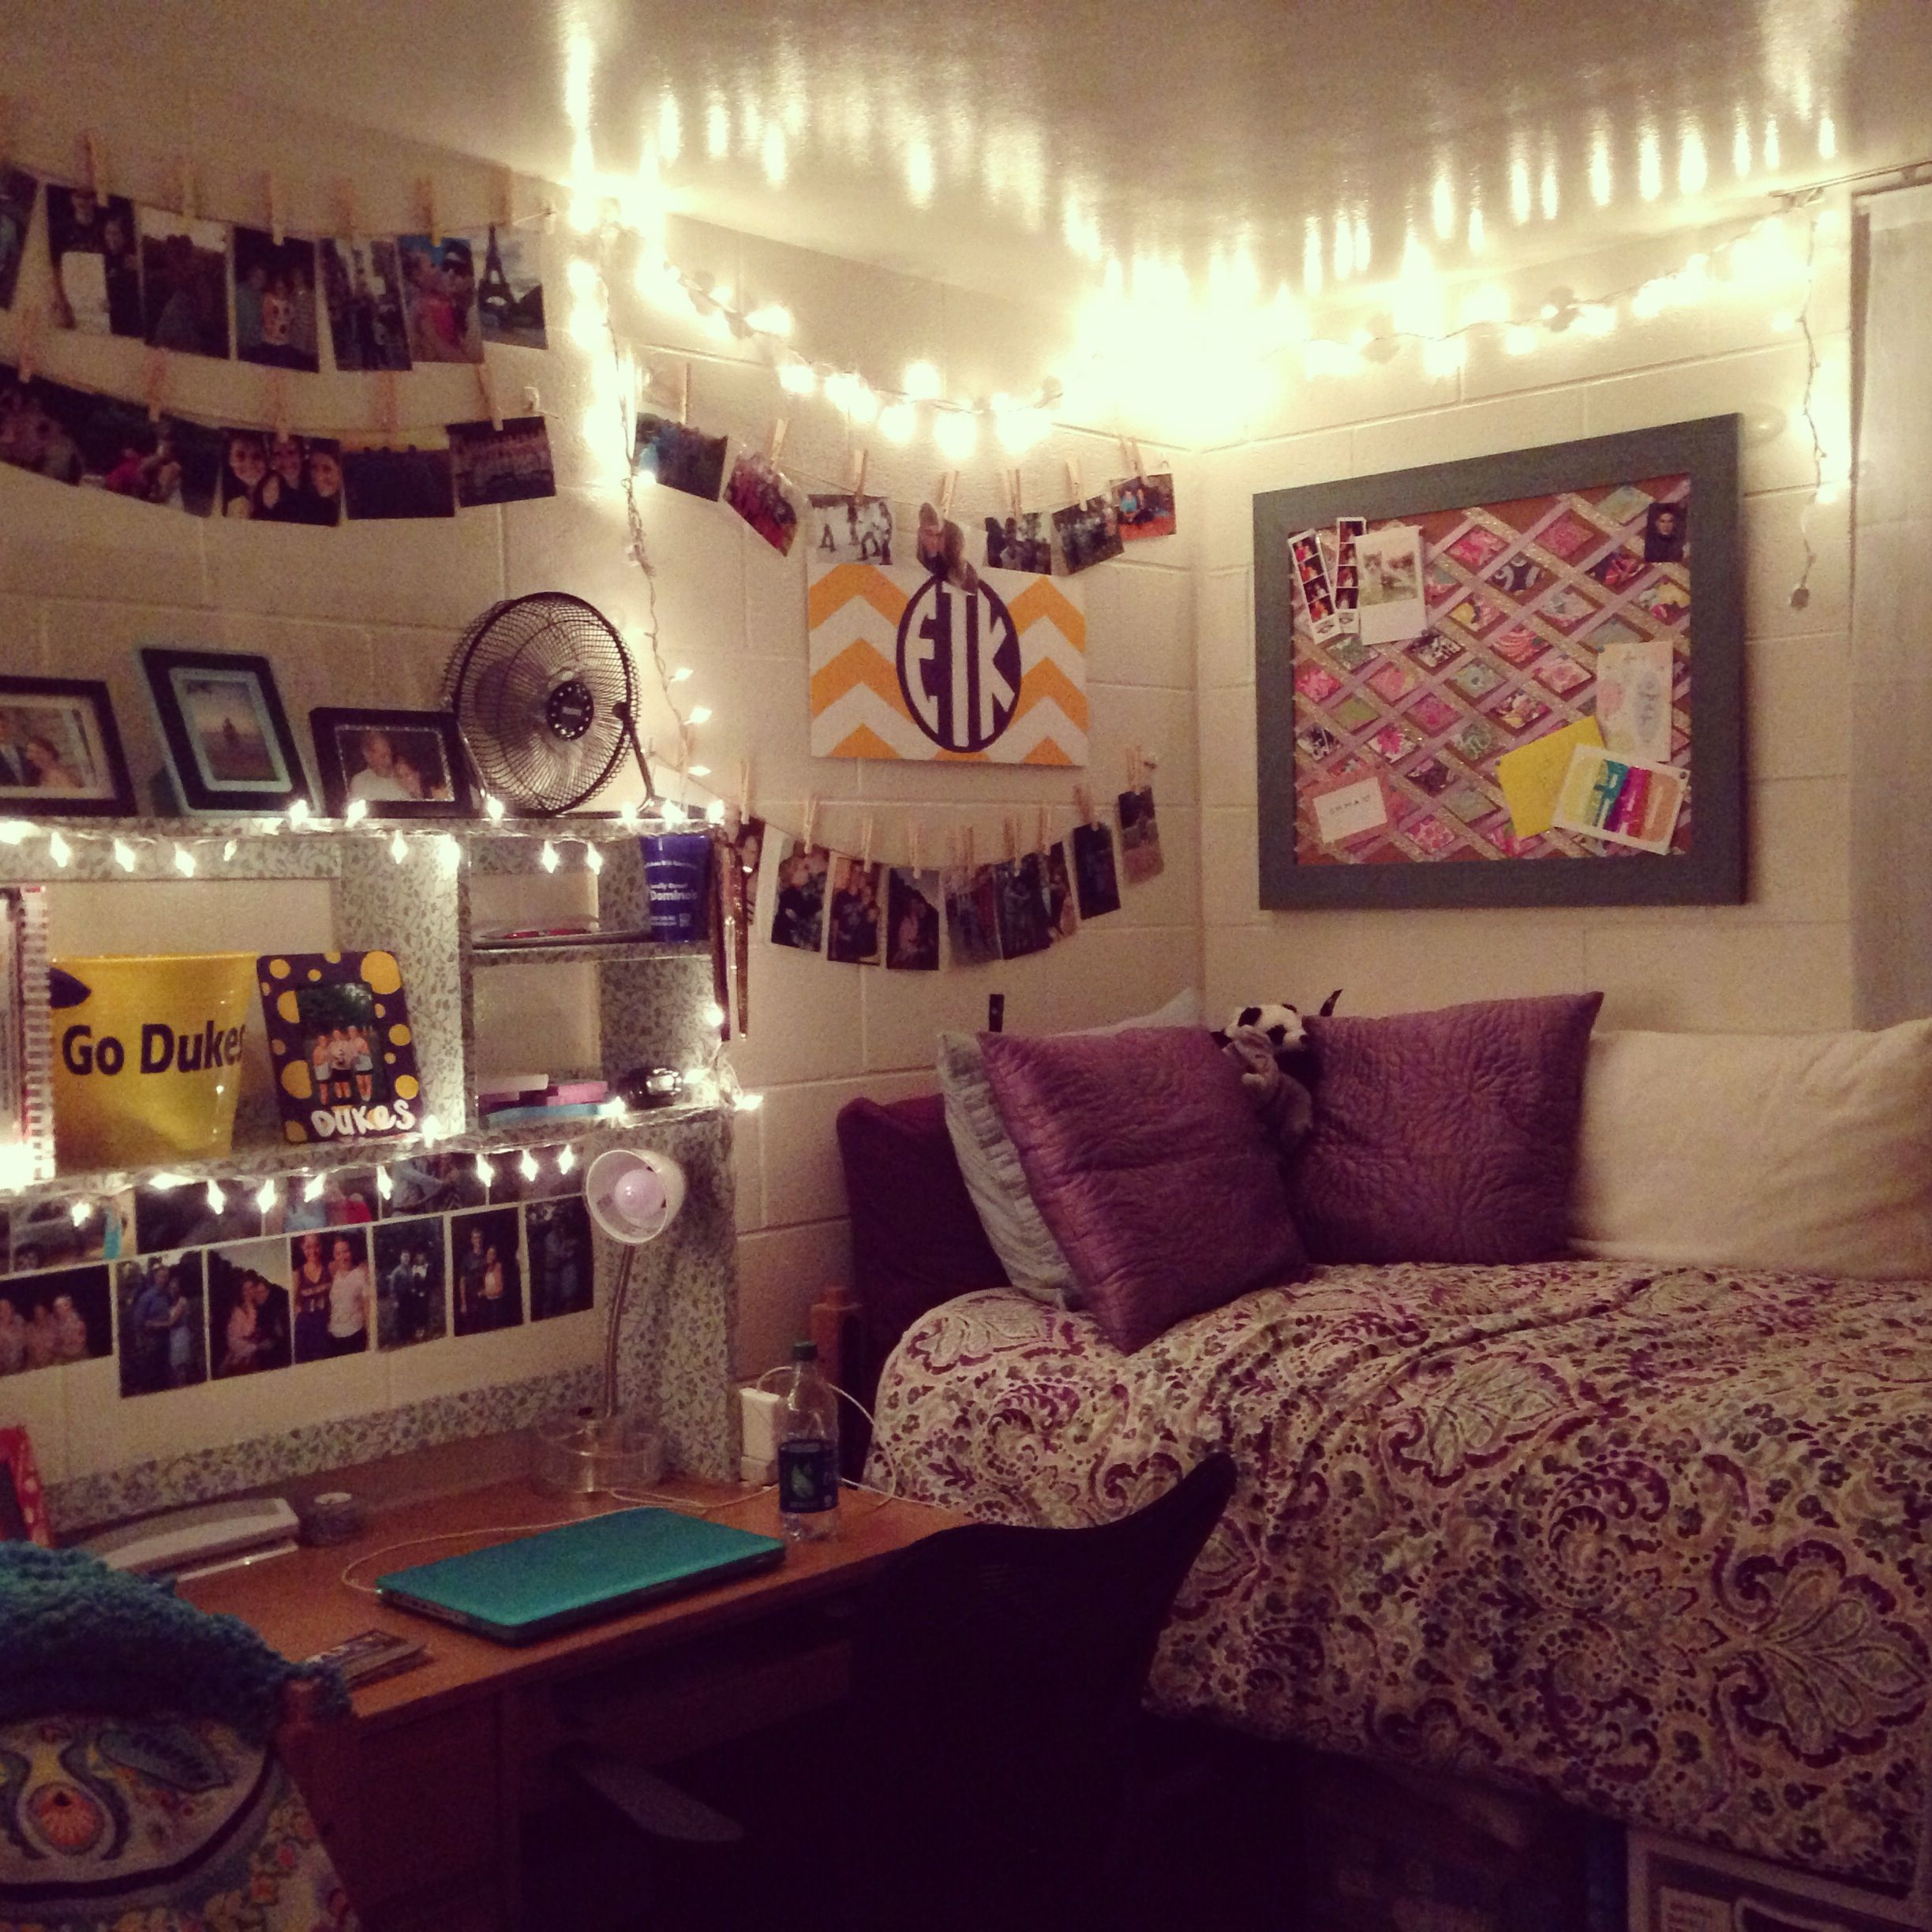 Decorative lights for dorm room - College Life